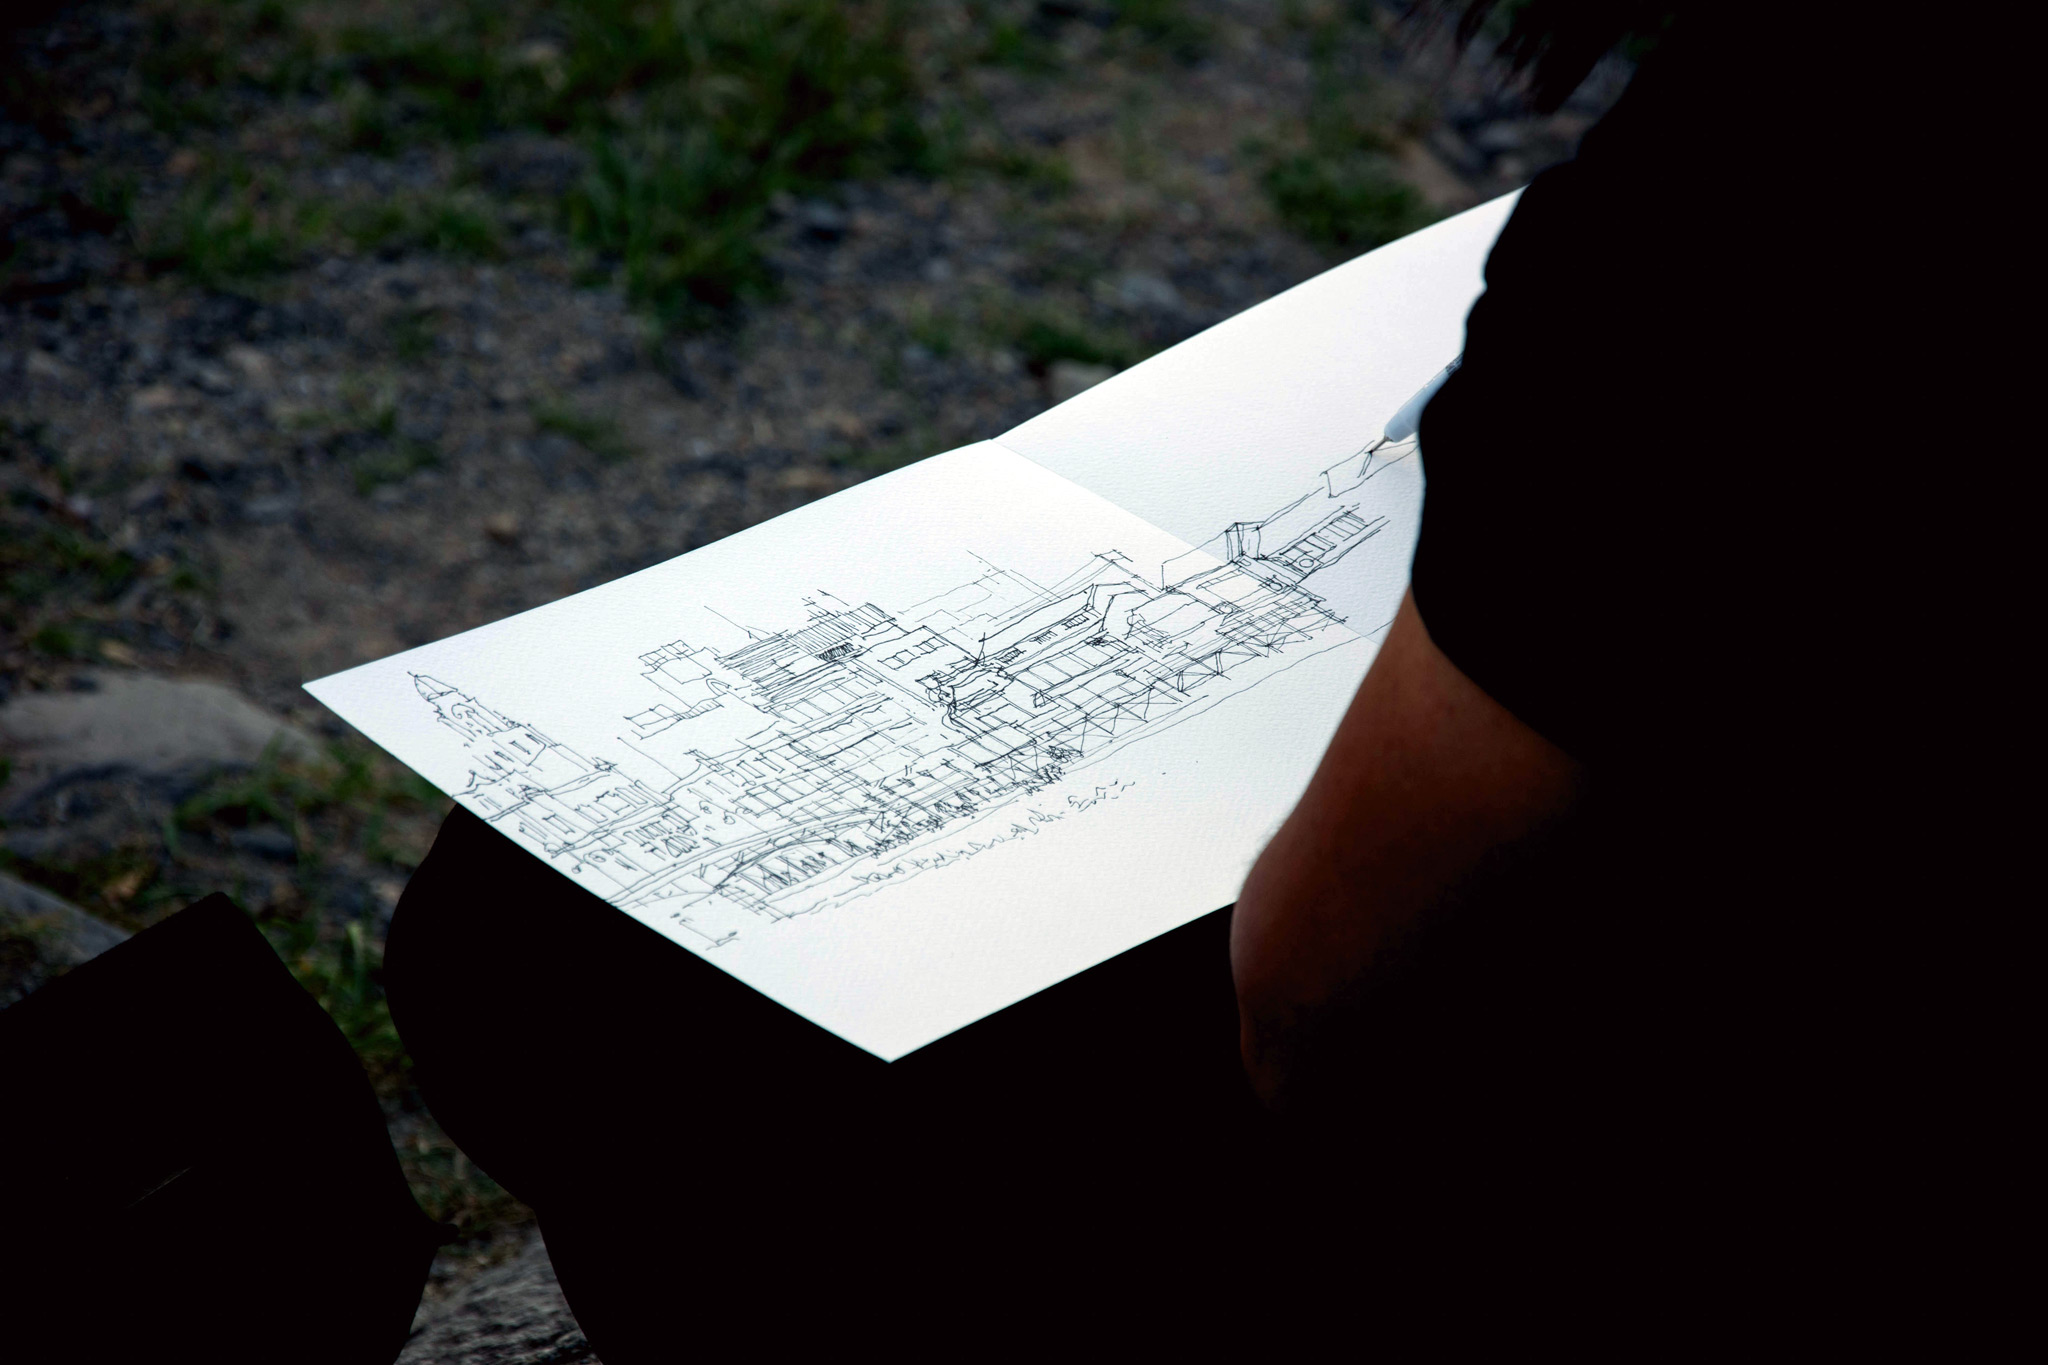 Architecture is a journey to discover yourself archistudent its architecture design through sketch solutioingenieria Gallery